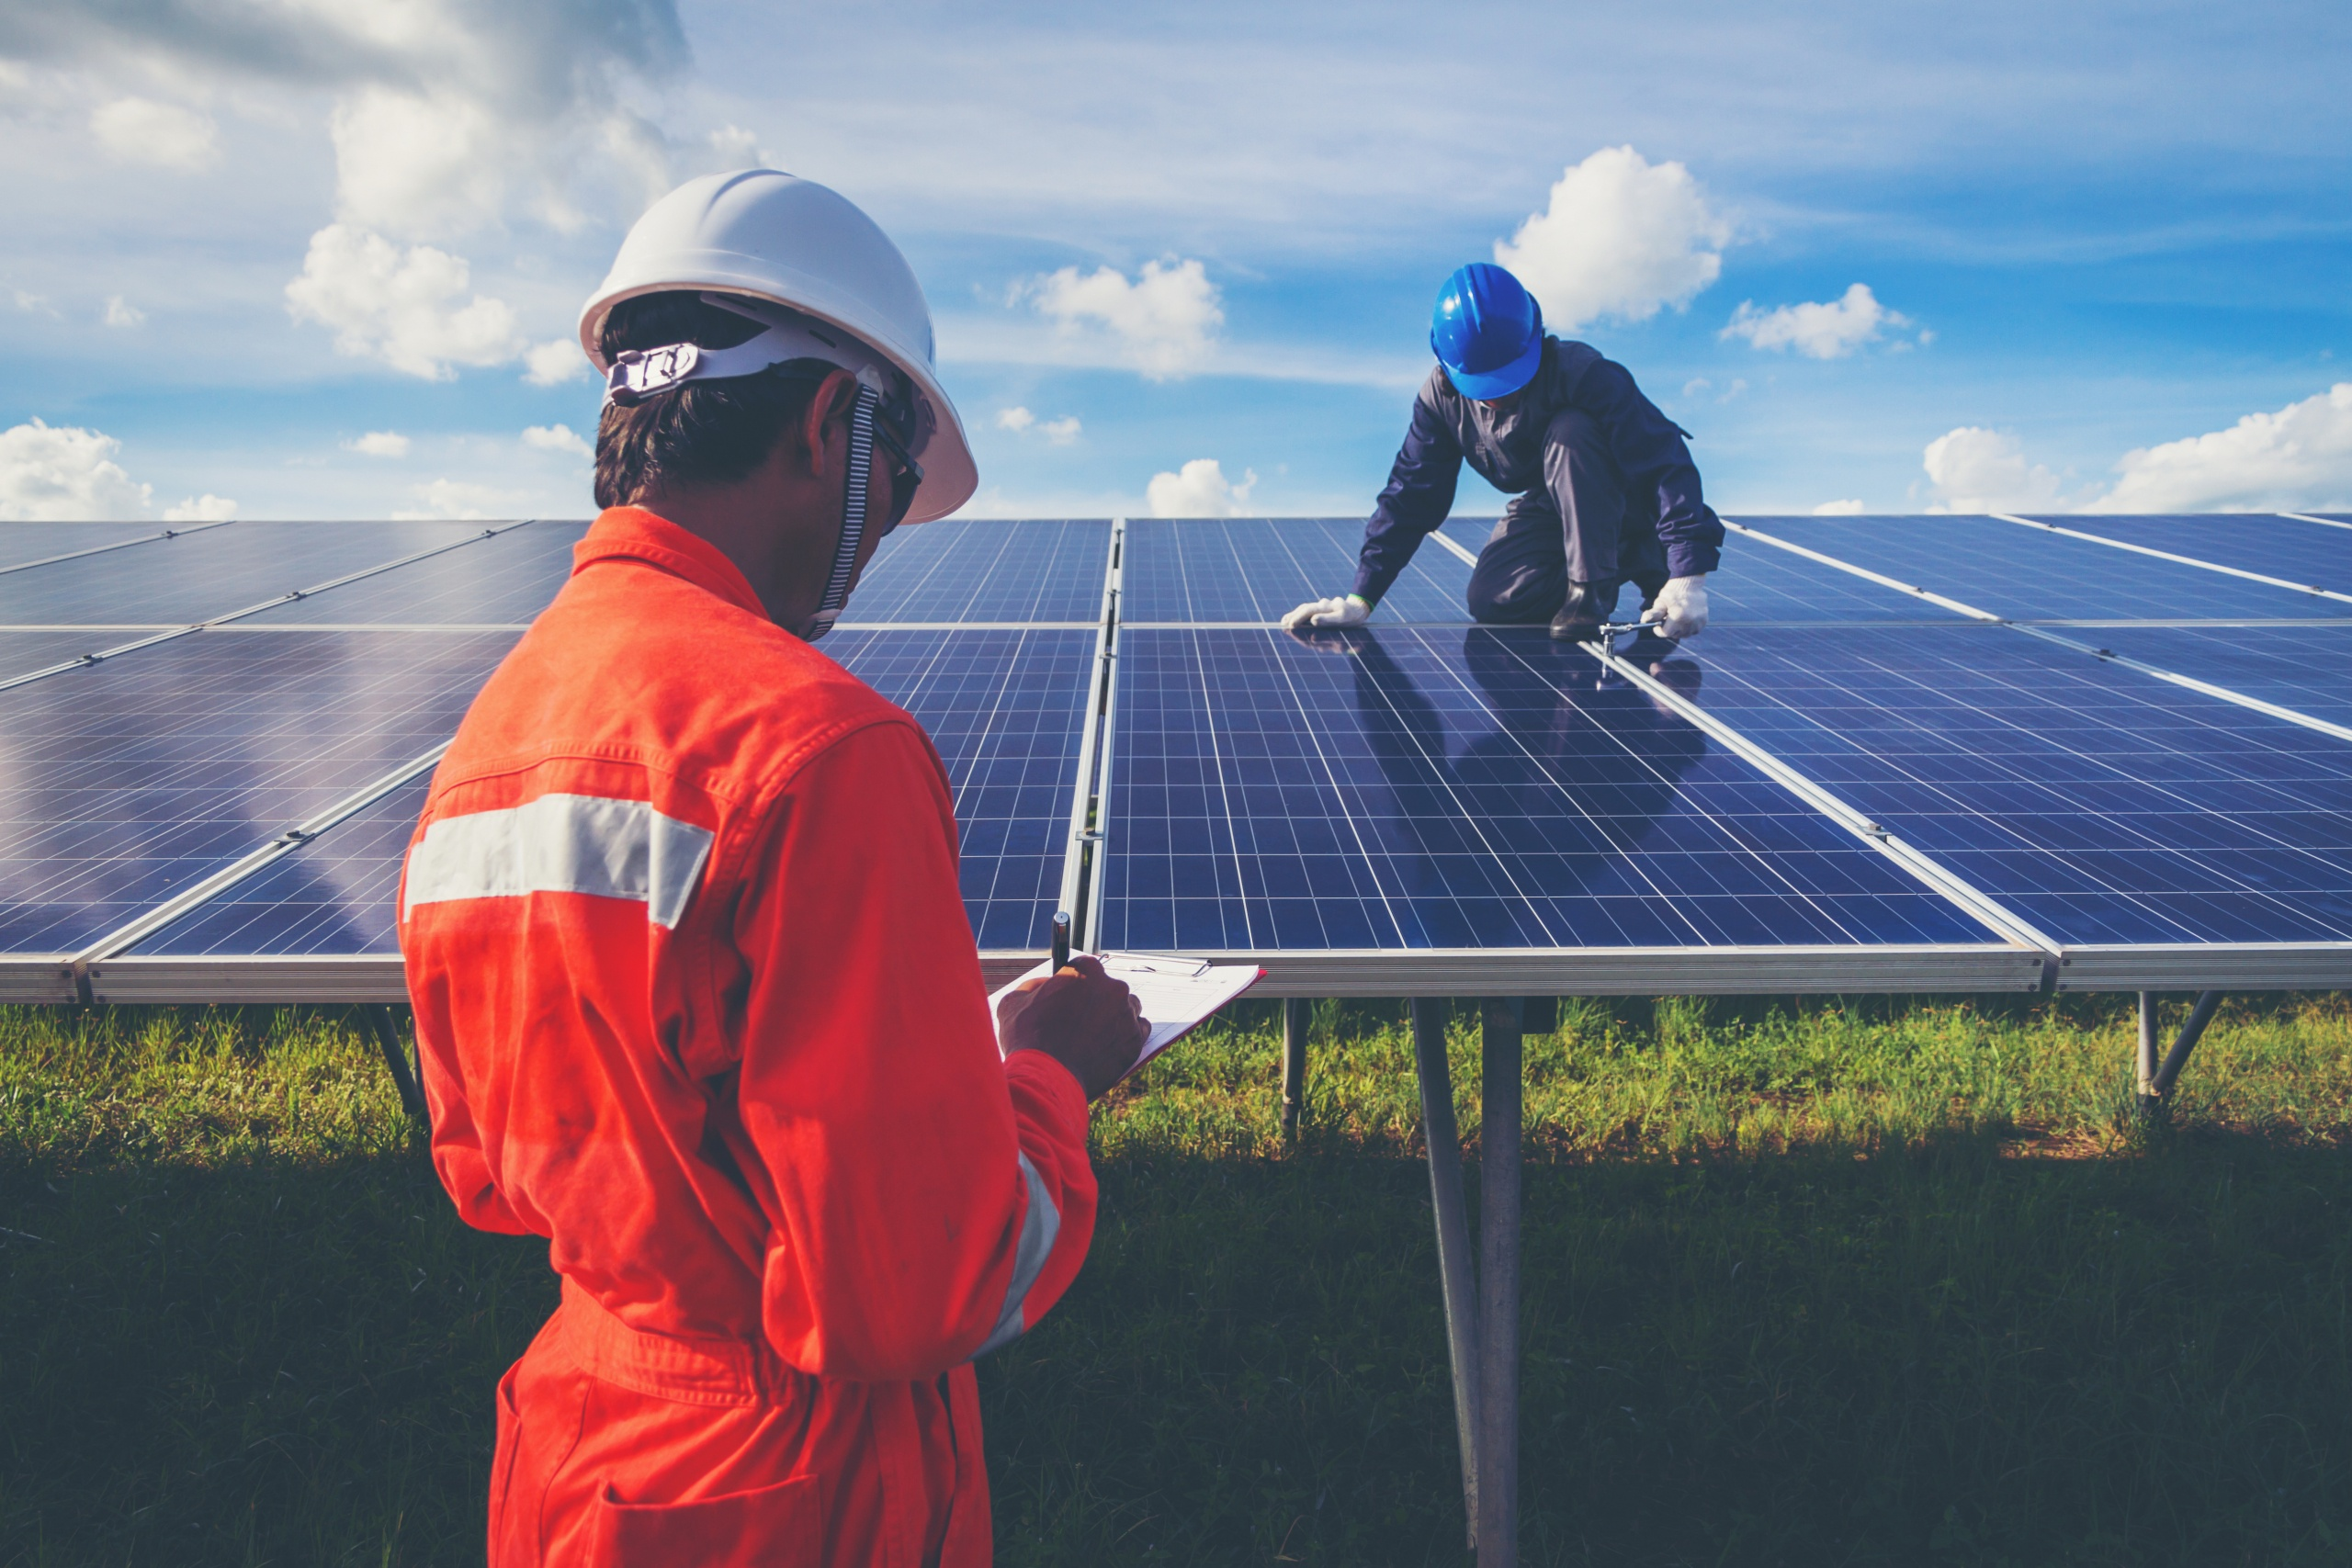 engineer working on checking and maintenance in solar power plant